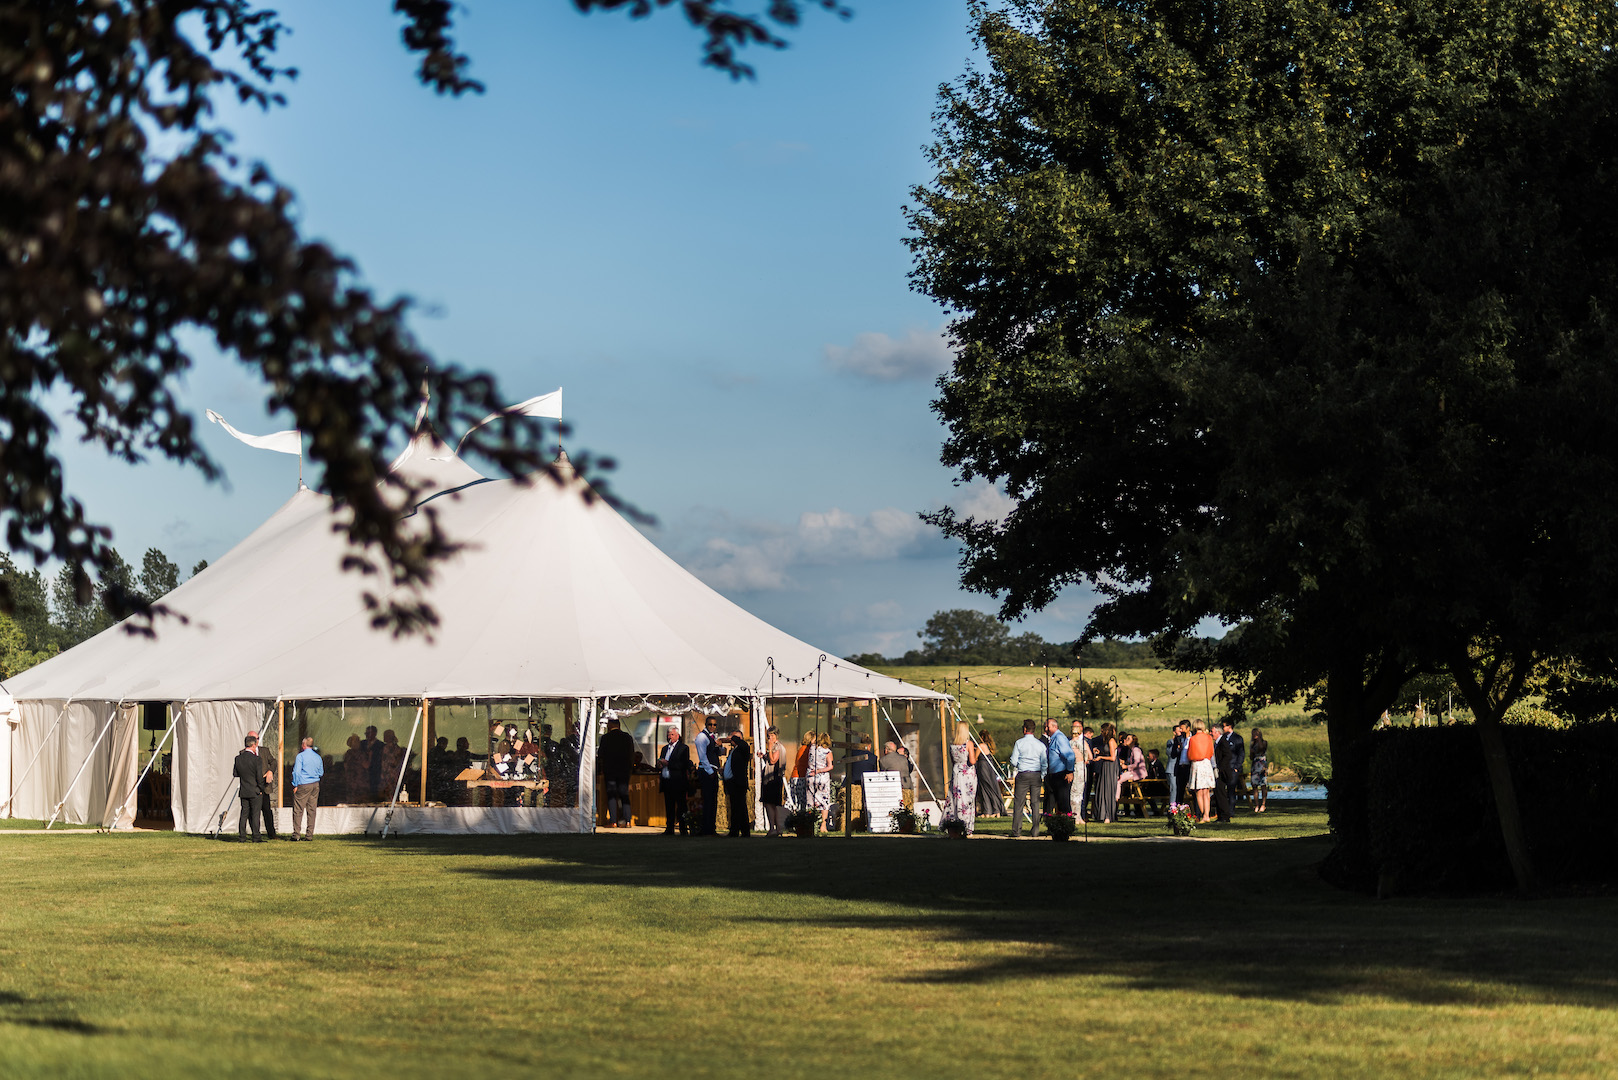 Sarah and Joe's PapaKata Sperry Wedding: Sperry tent exterior by Paul Mockford Photography